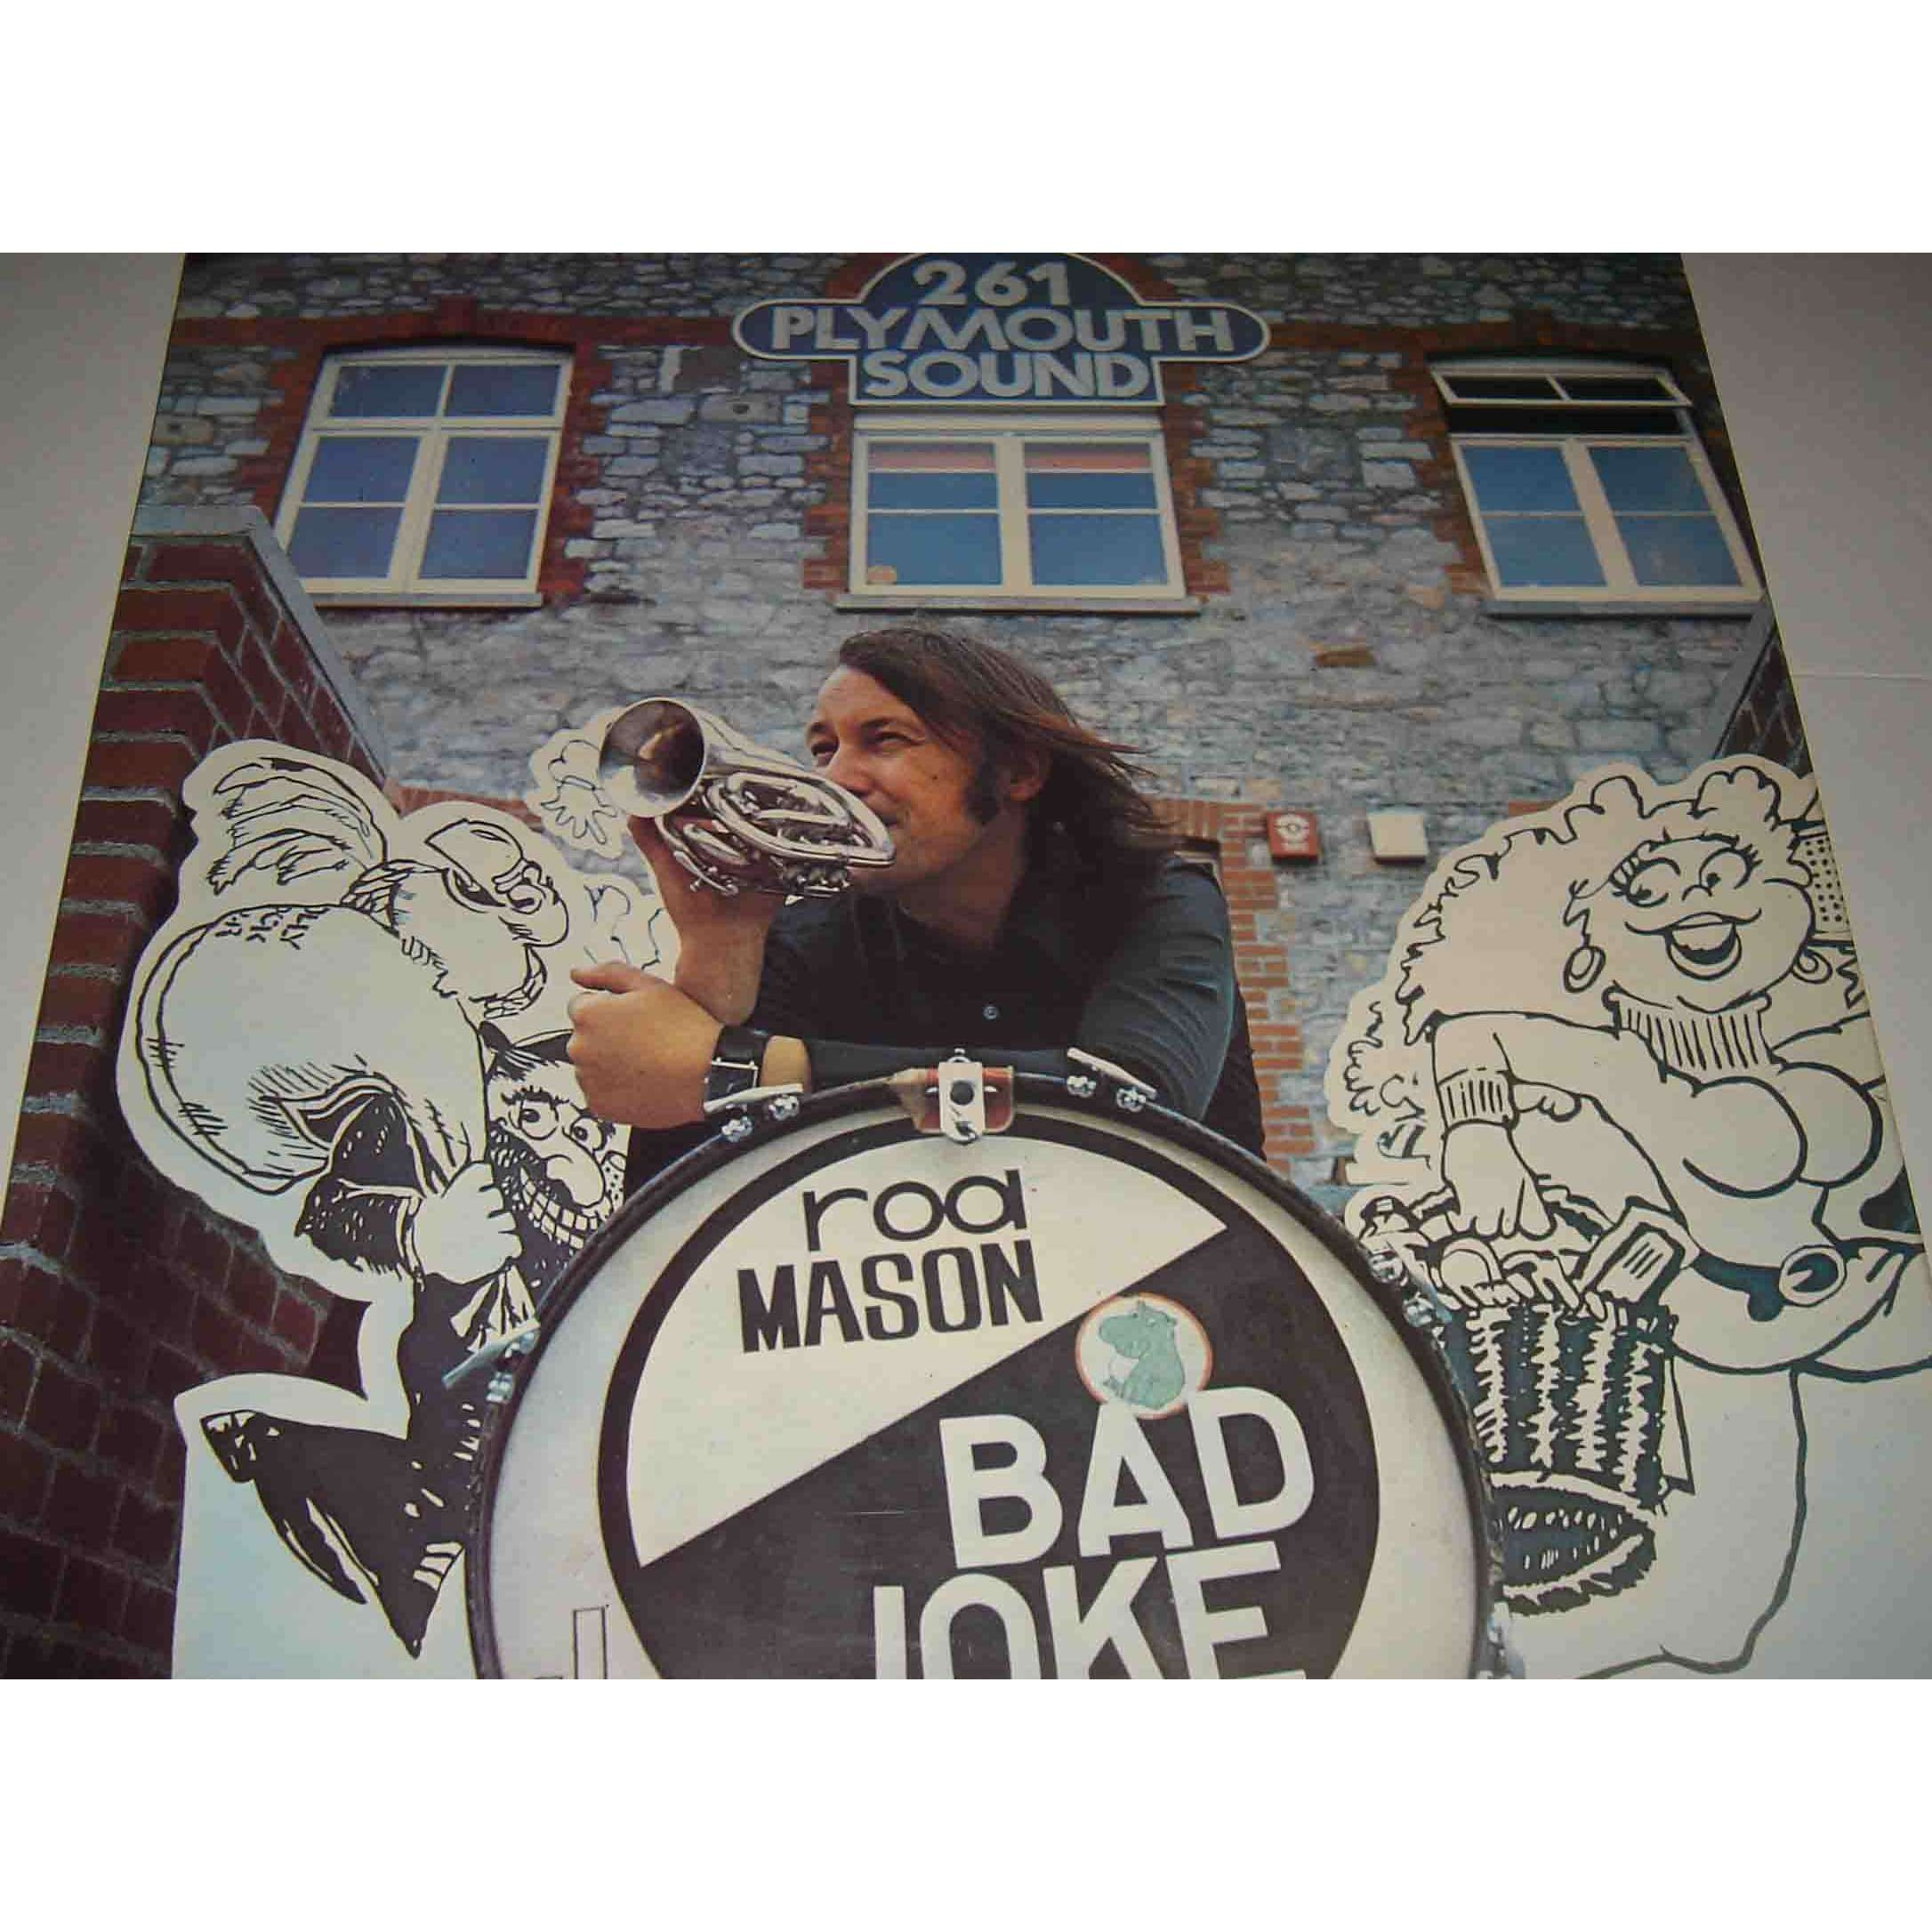 rod Mason 261 plymouth sound bad joke